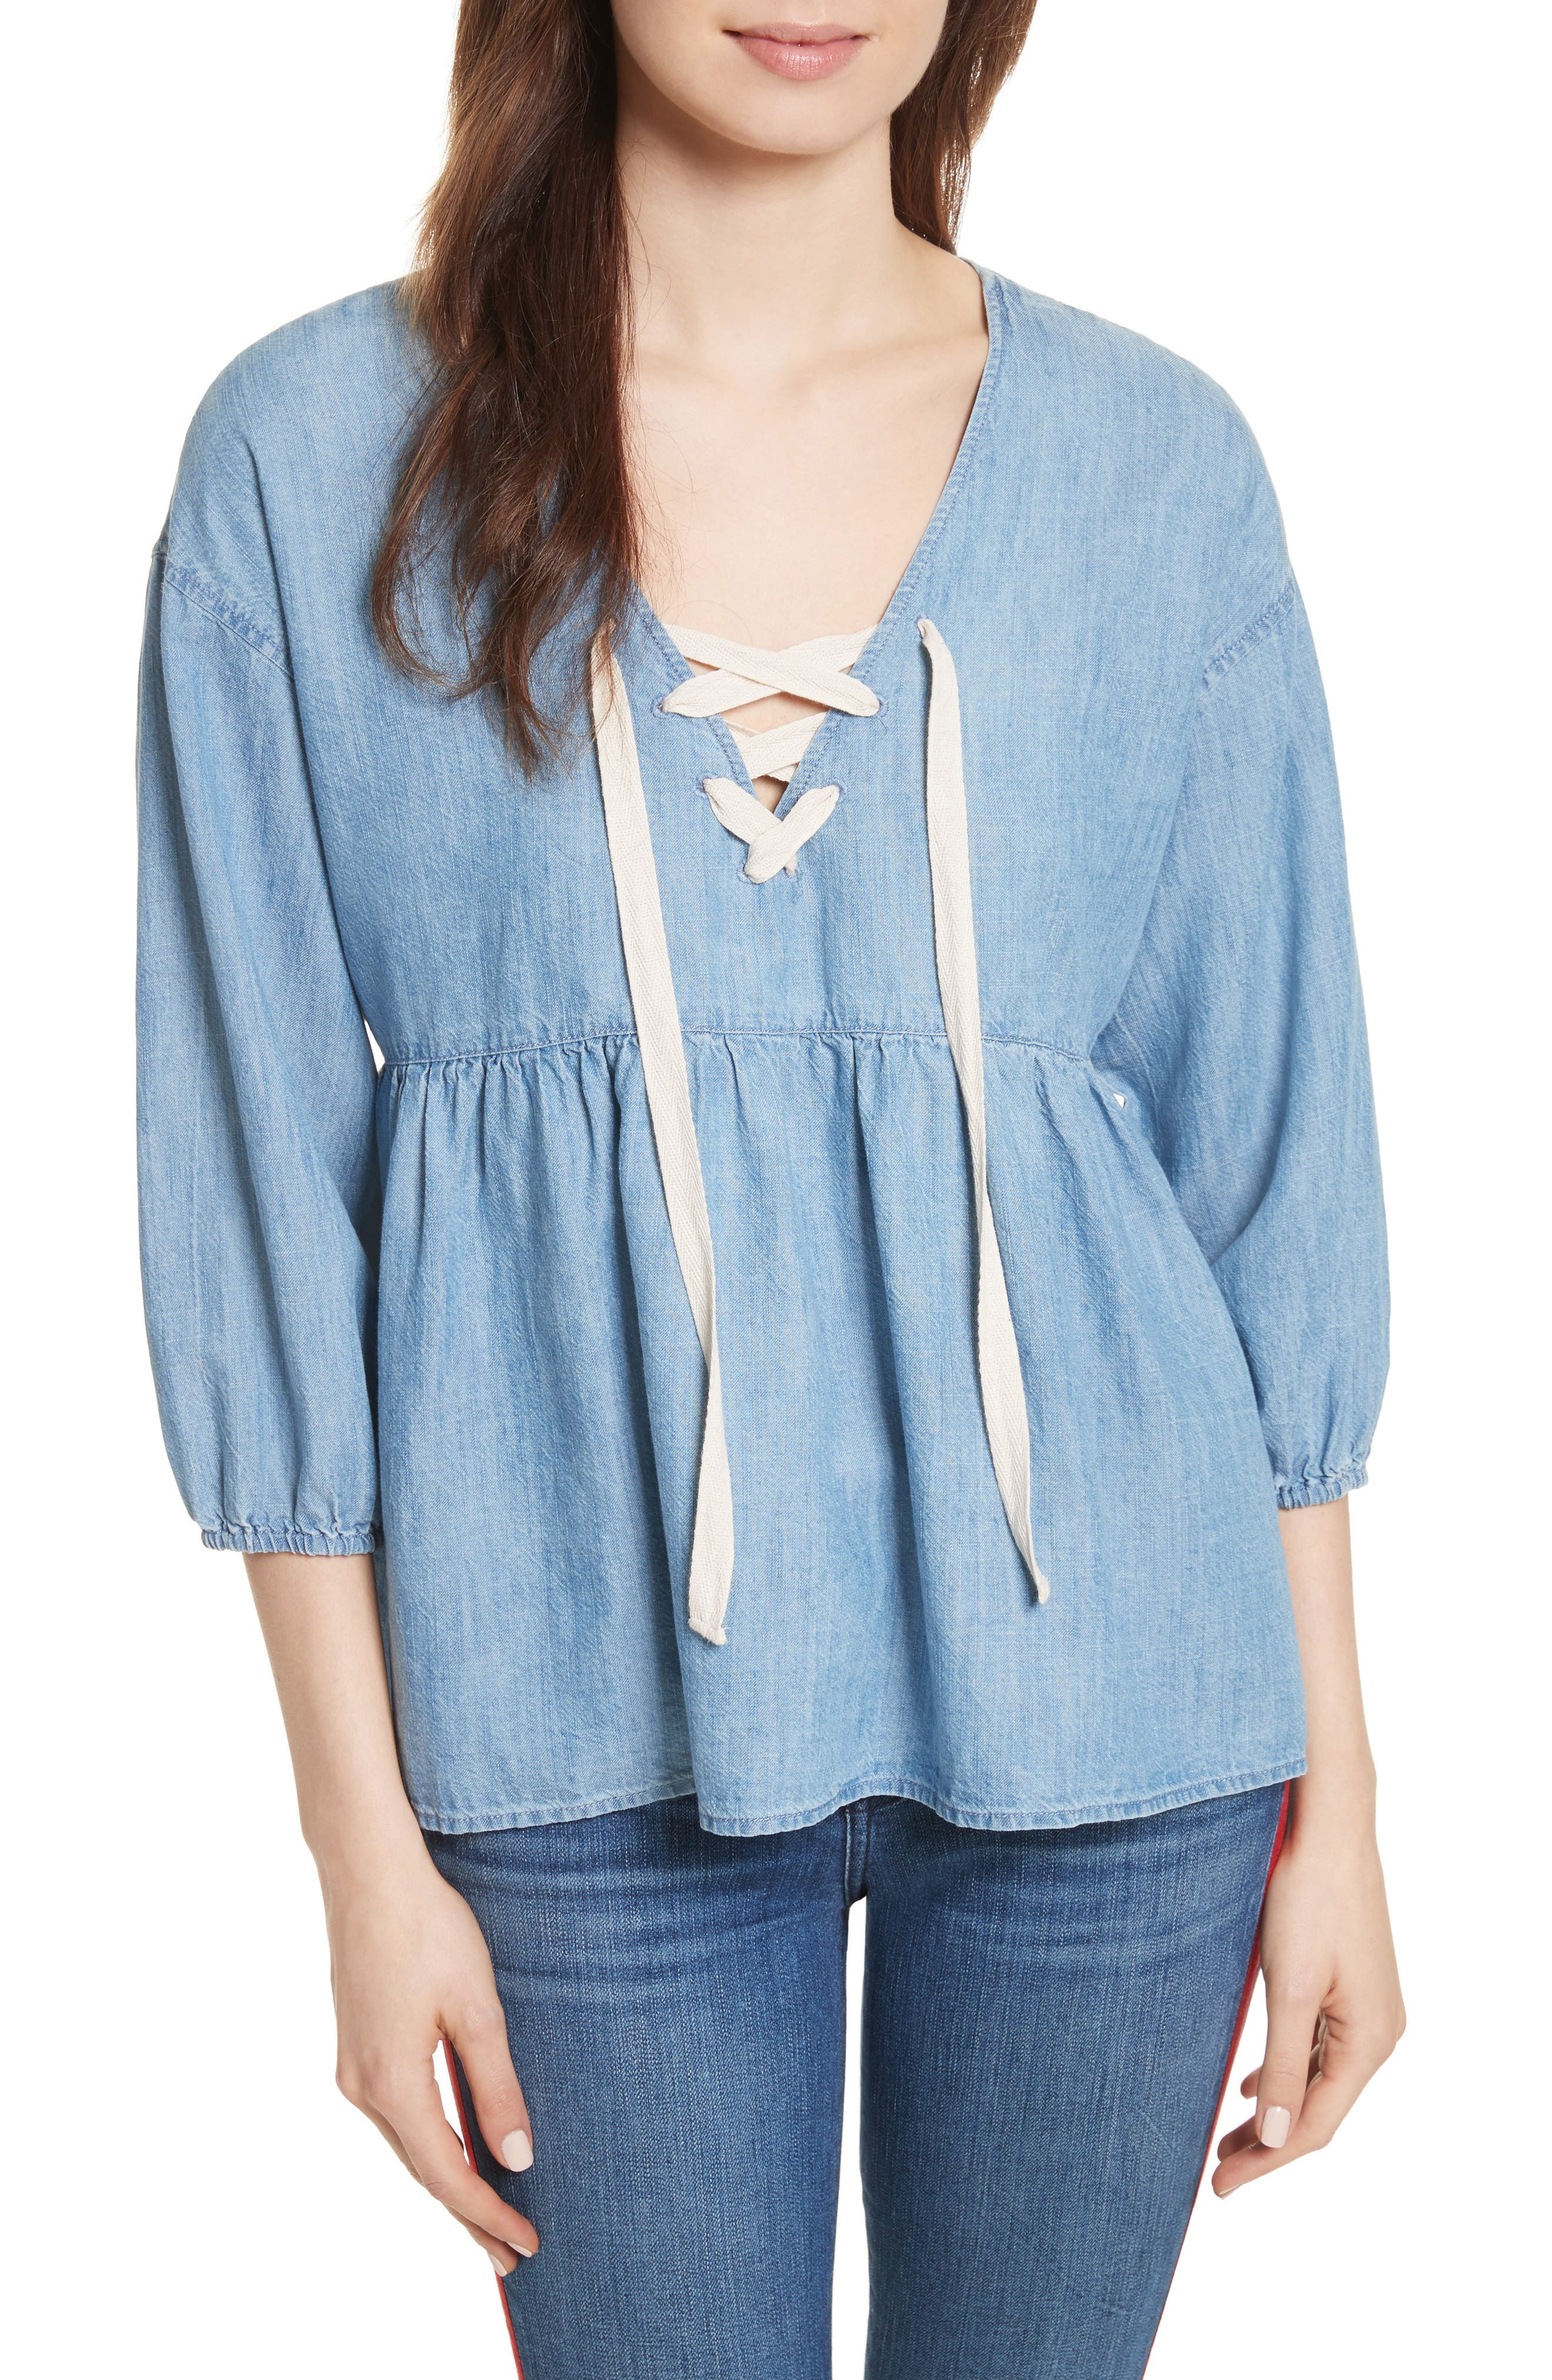 Bealette Lace-Up Chambray Top,                         Main,                         color, 481